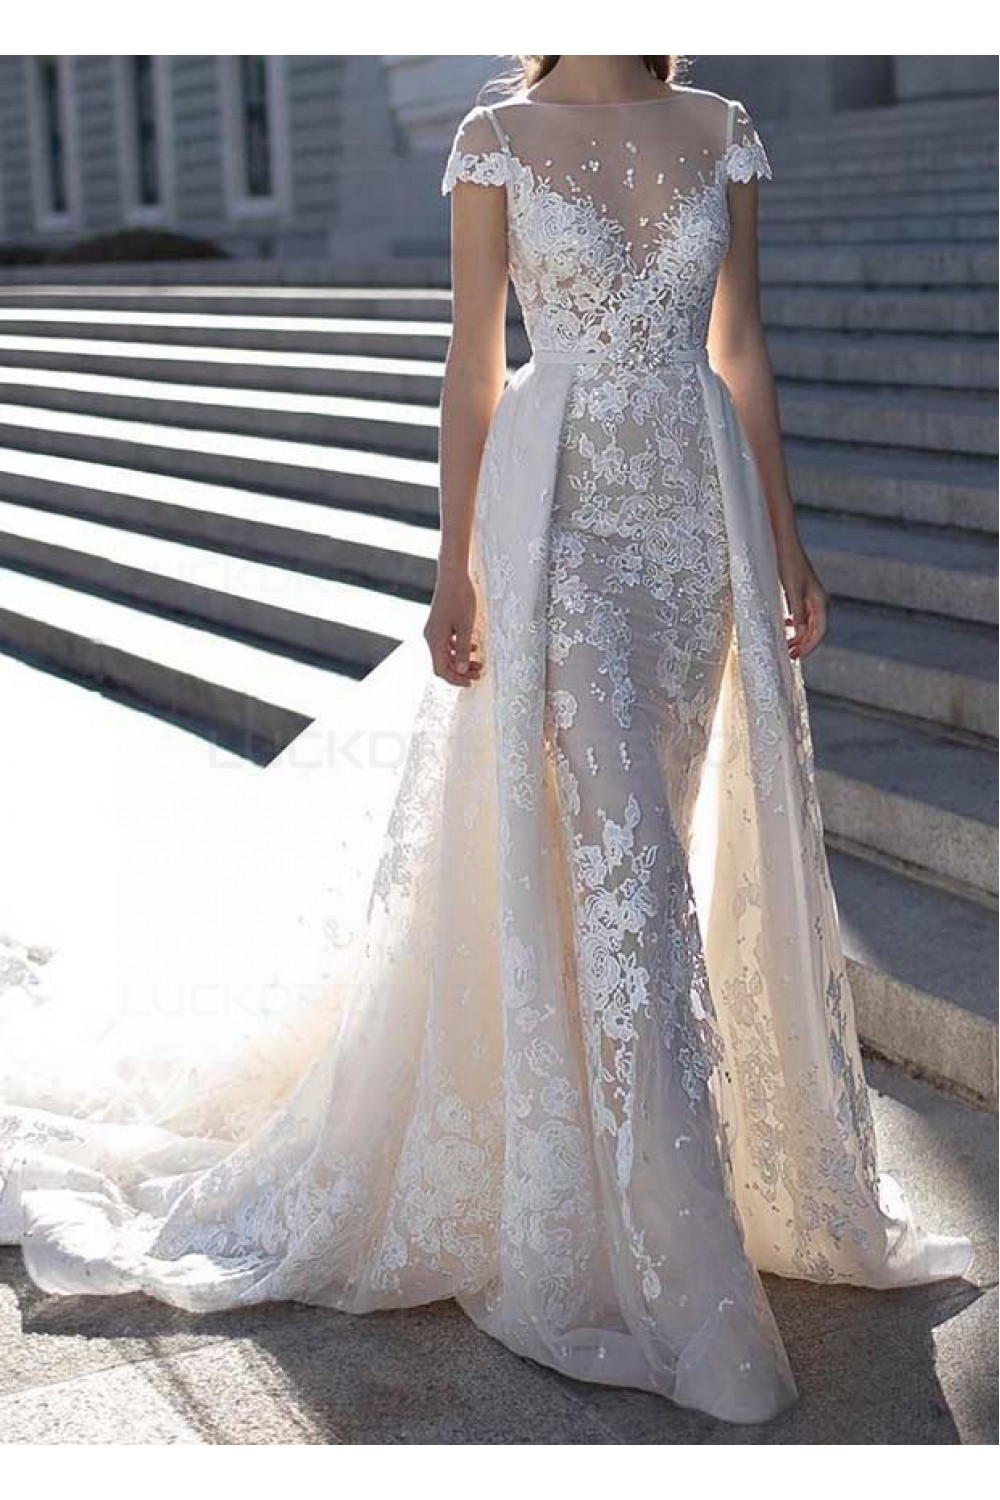 Sheath/Column Bateau Short Sleeve Lace Wedding Dress